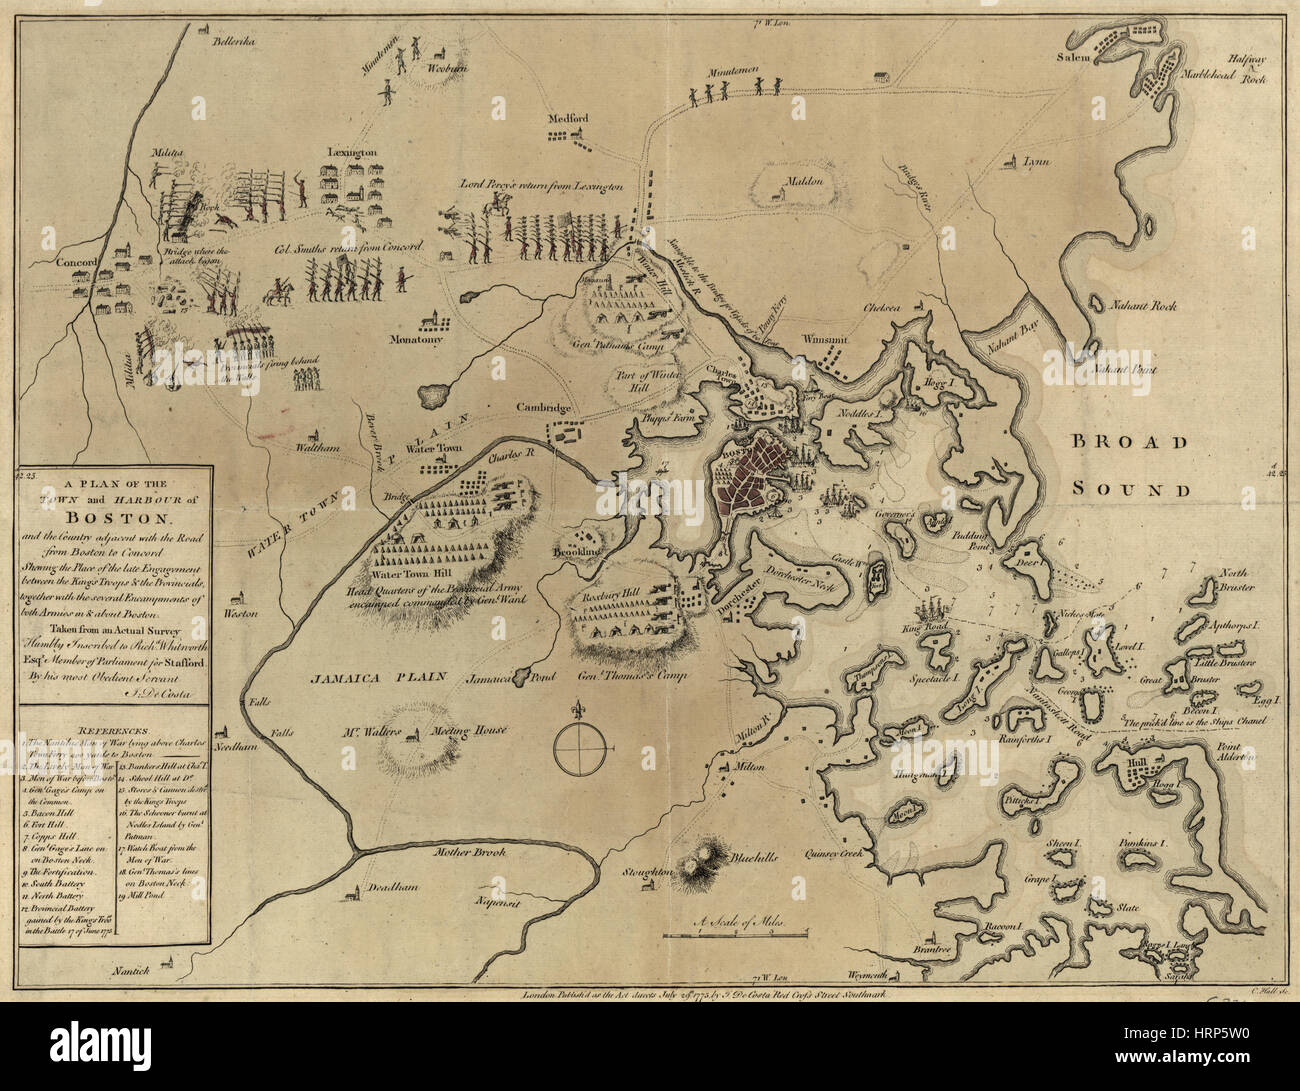 Battle Positions, Battle of Concord, 1775 - Stock Image